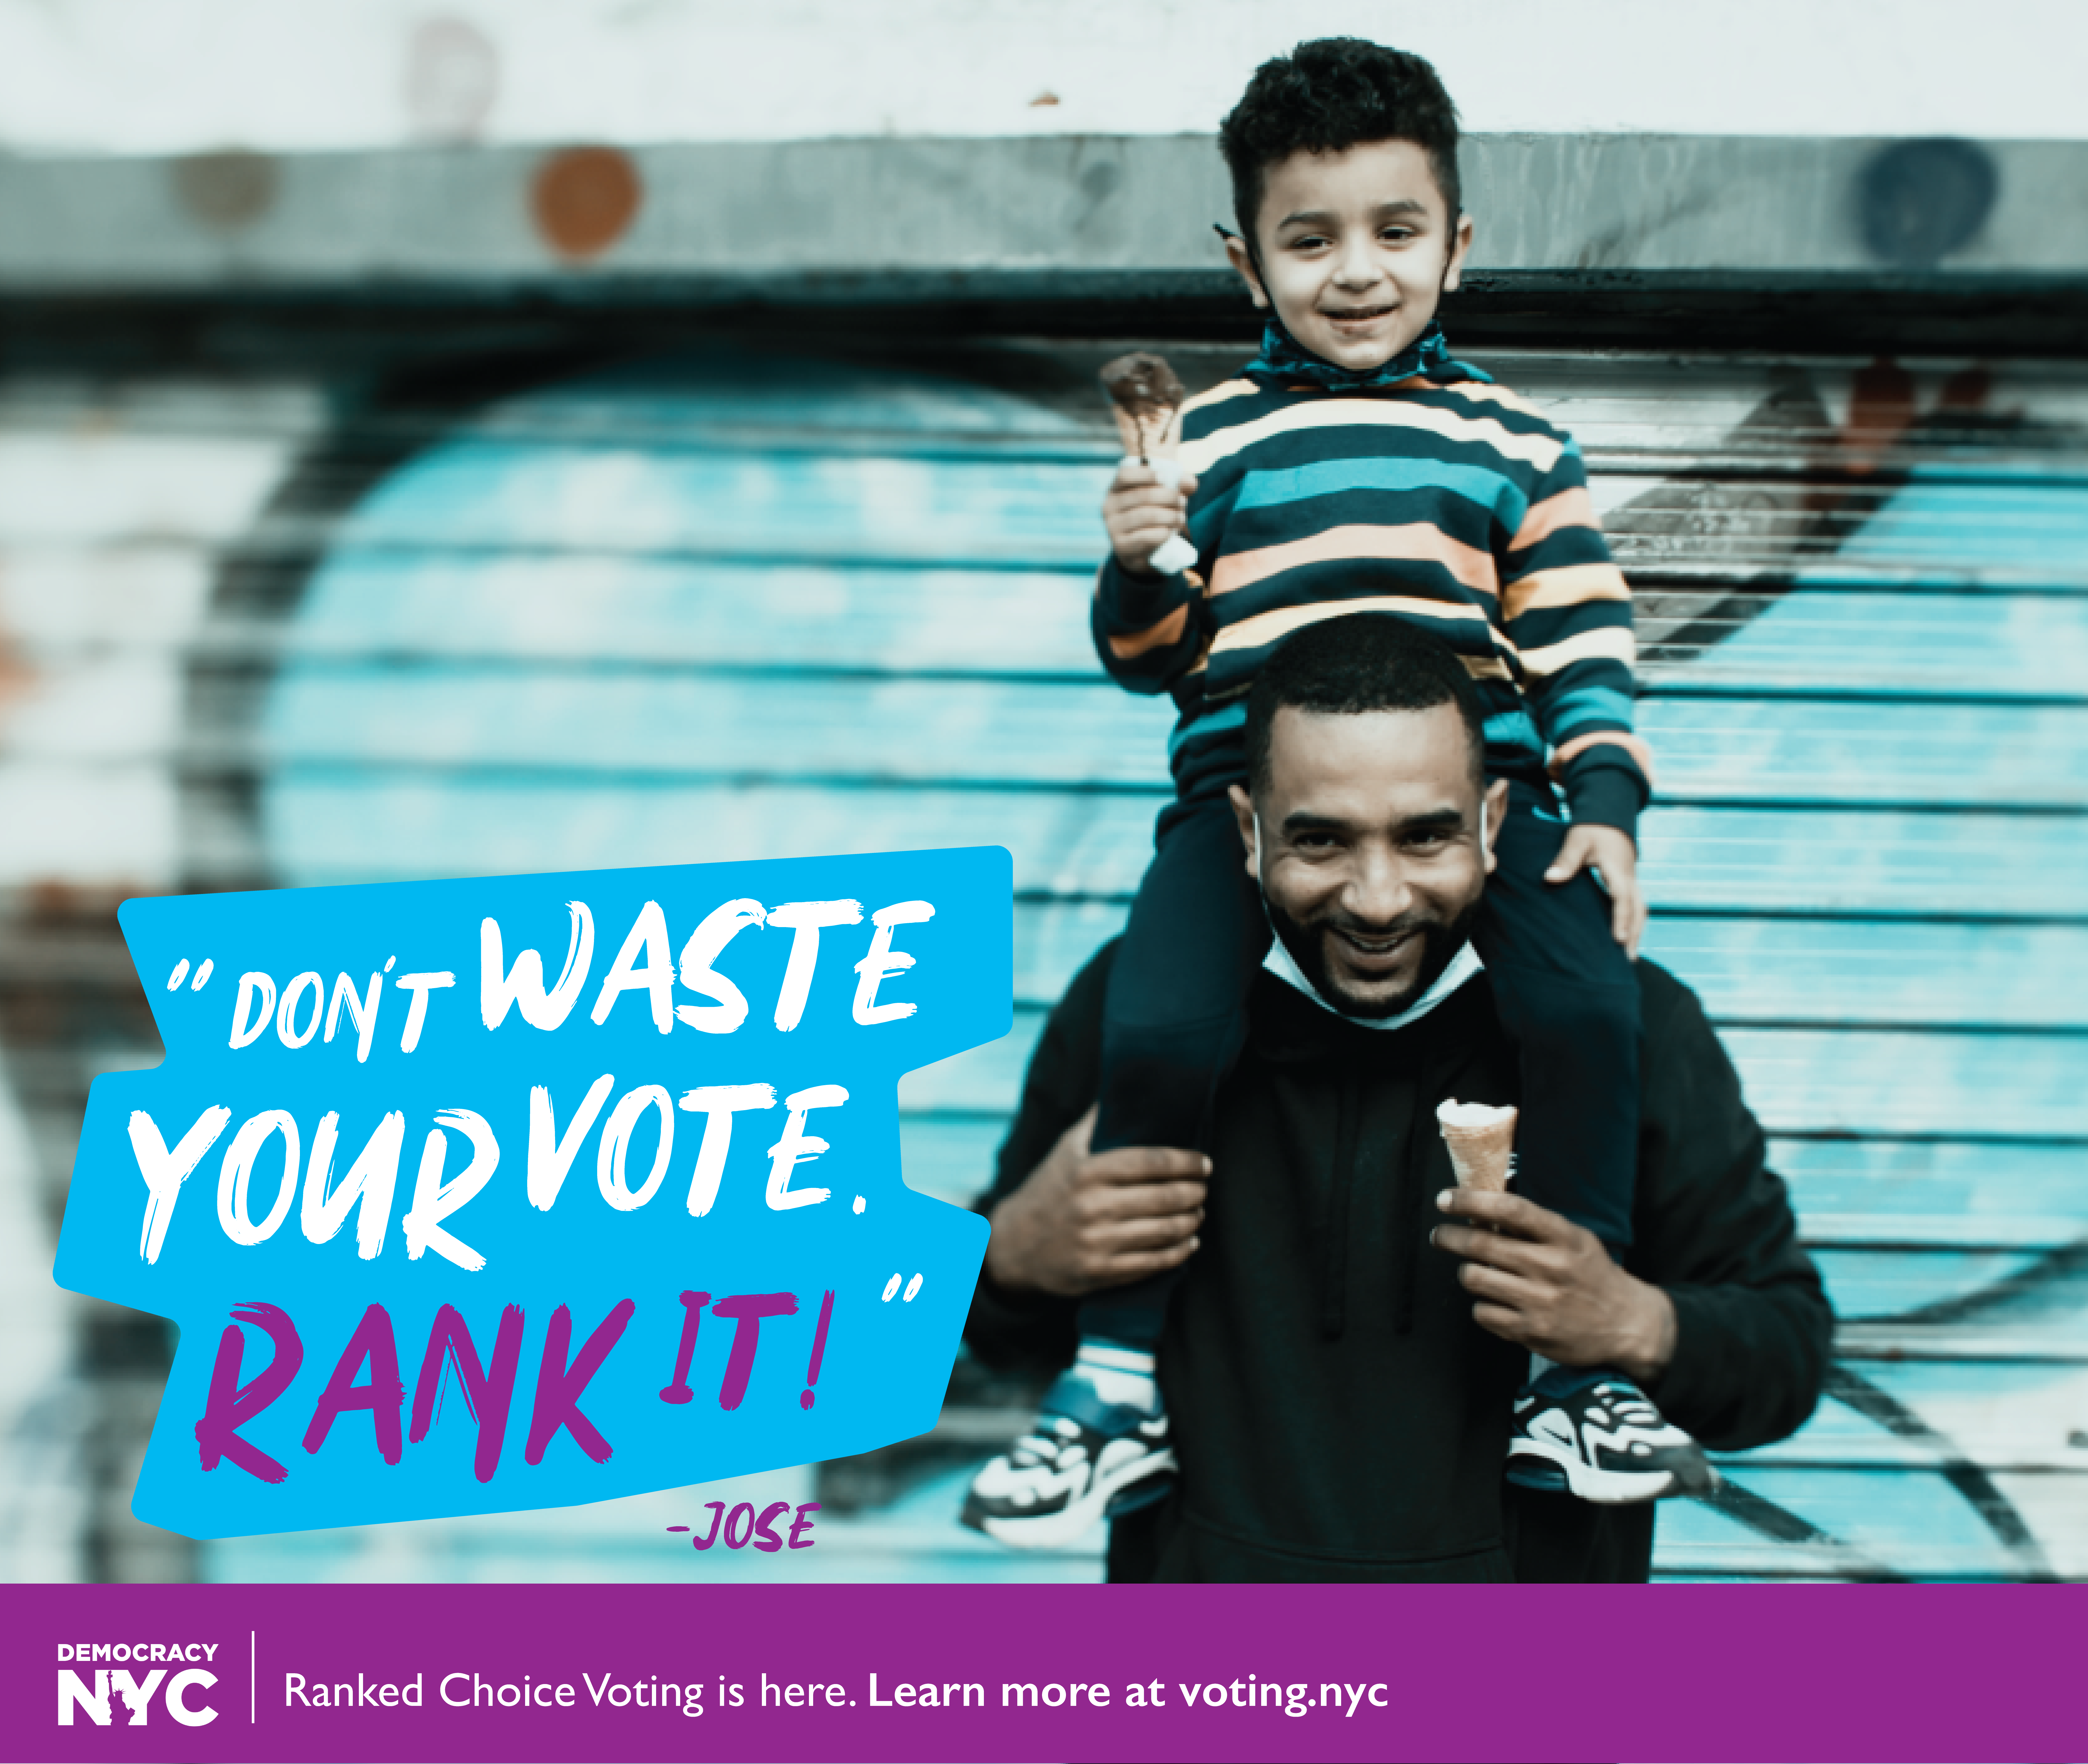 Don't Waste Your Vote Rank It! banner